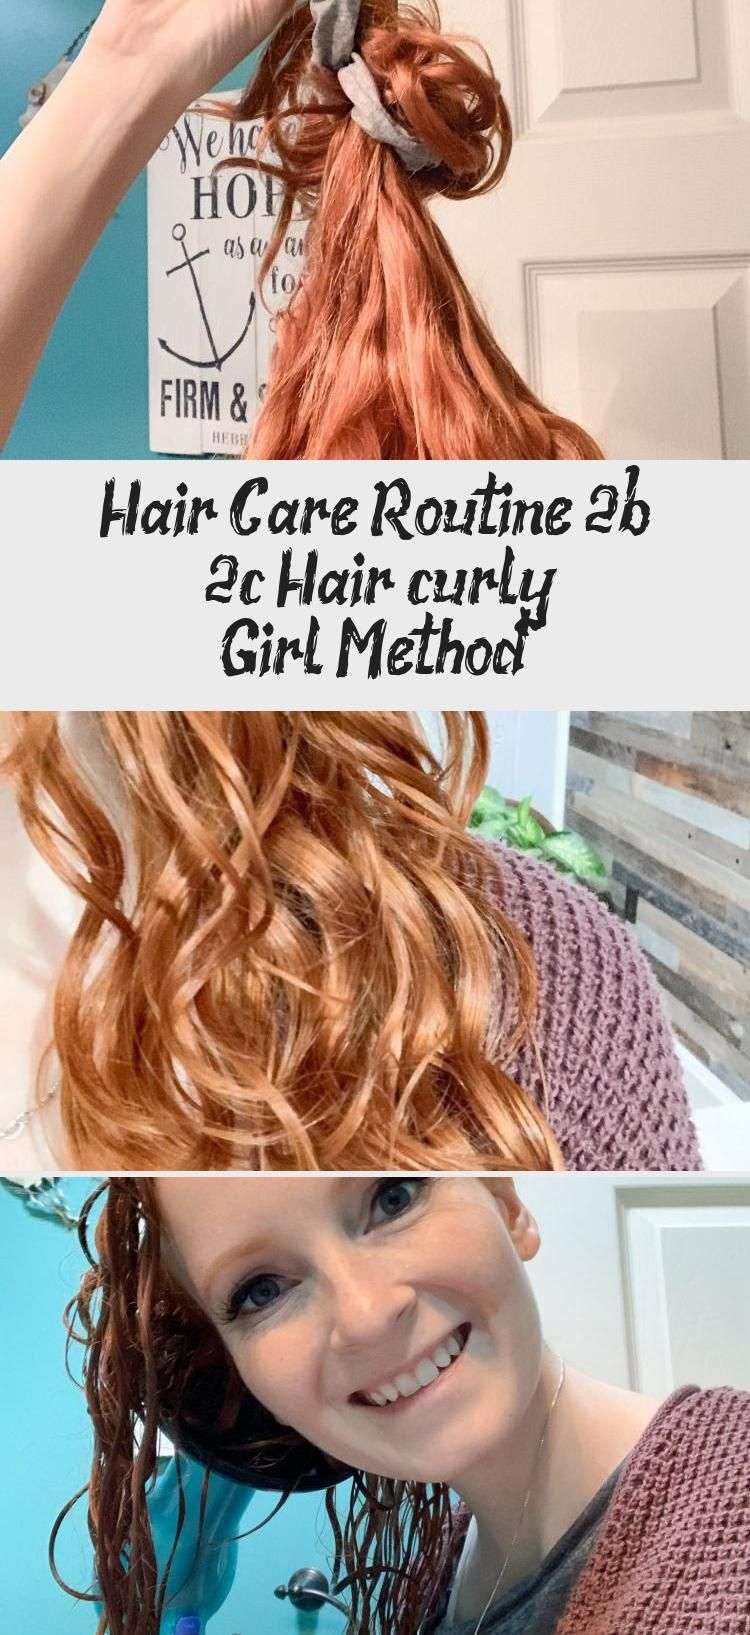 The 28 Best Hairstyles for Curly Hair Curly hair styles